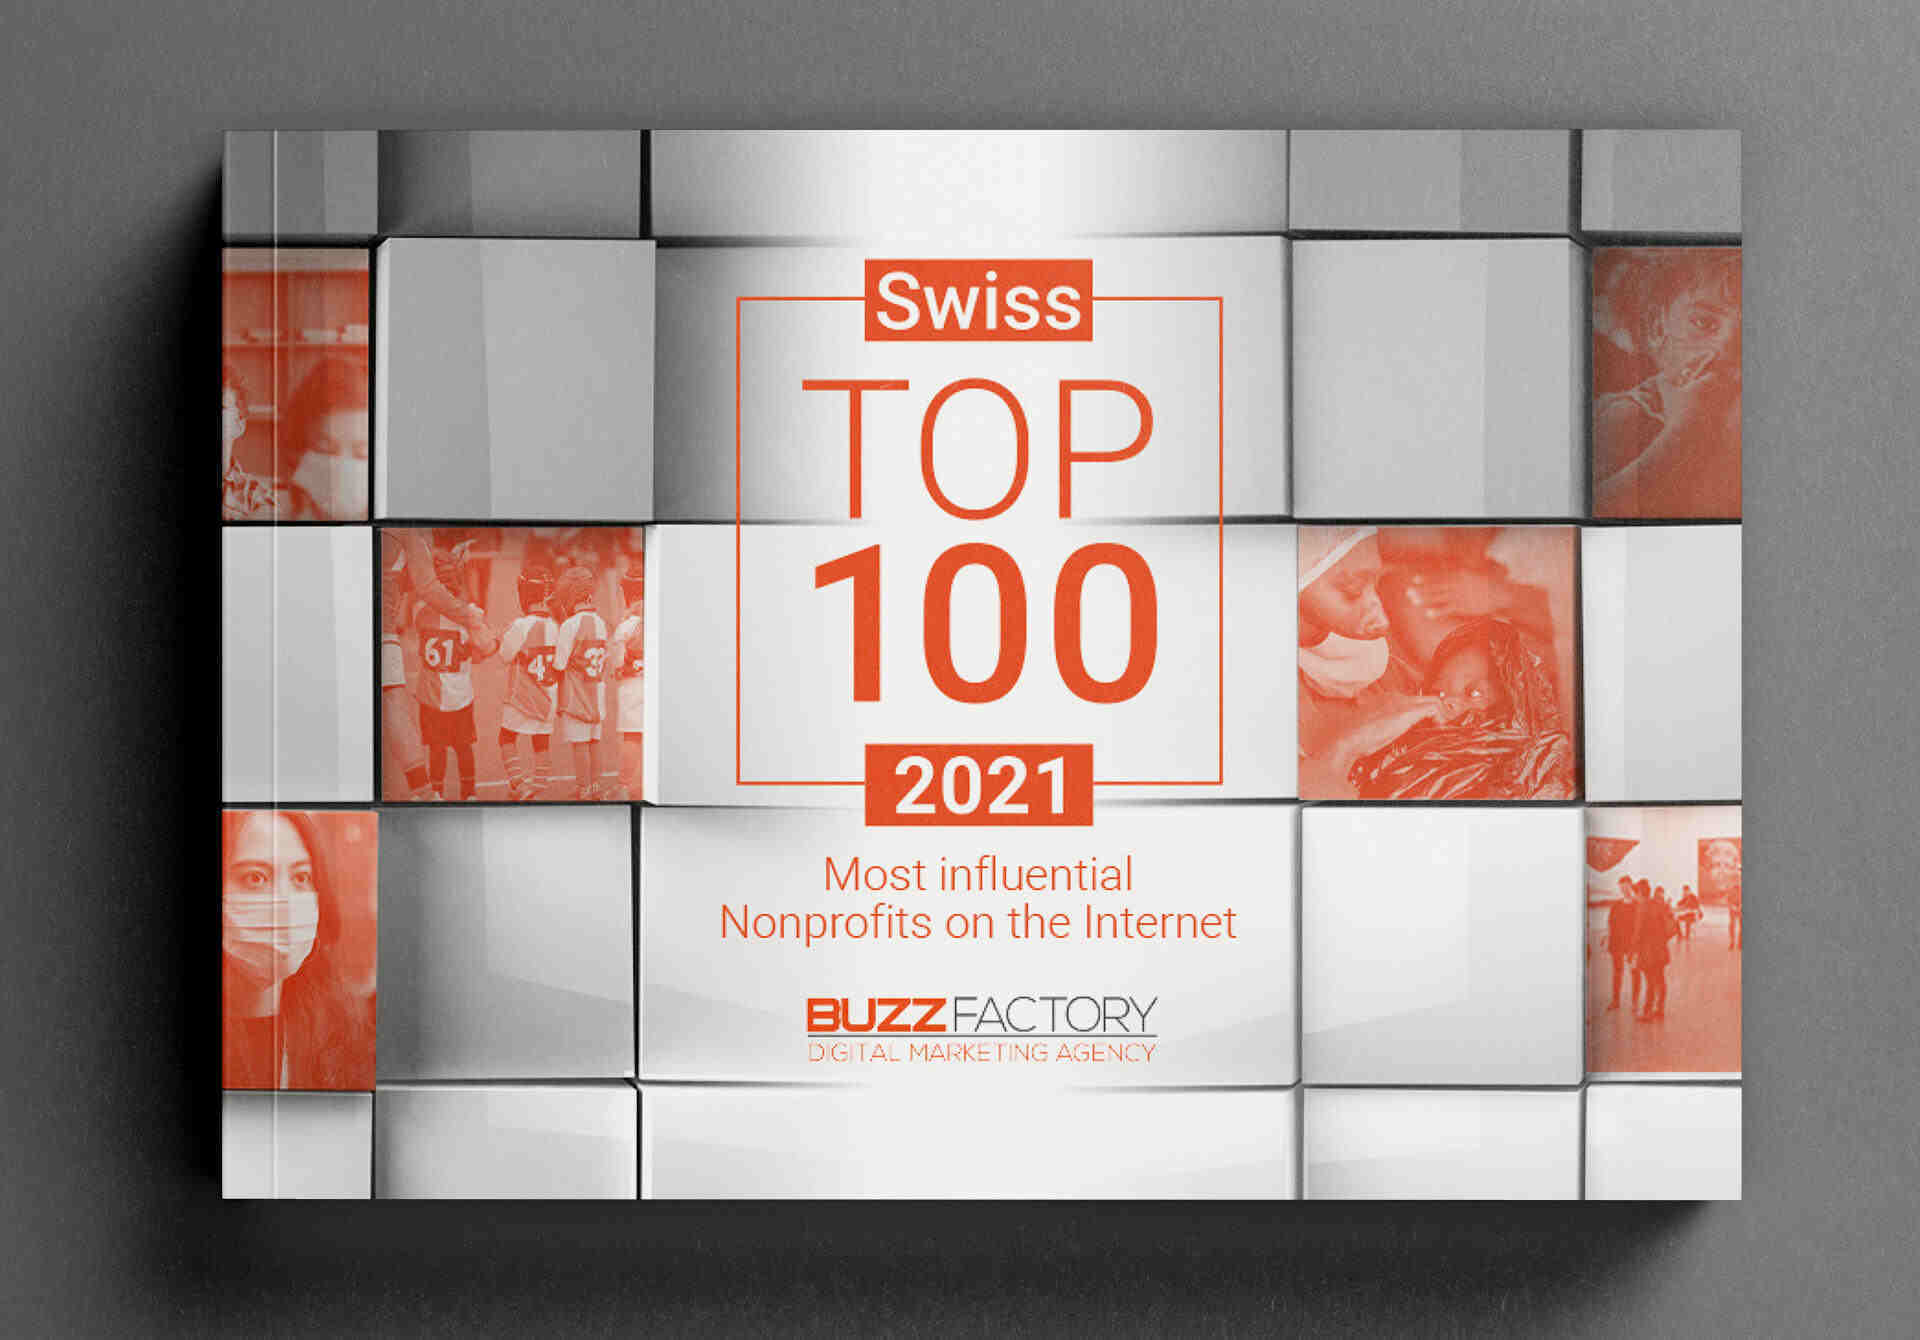 A New Buzz Factory Study of the Top 100 Nonprofits in Switzerland Reveals a Big Shift in Digital Trends for 2021